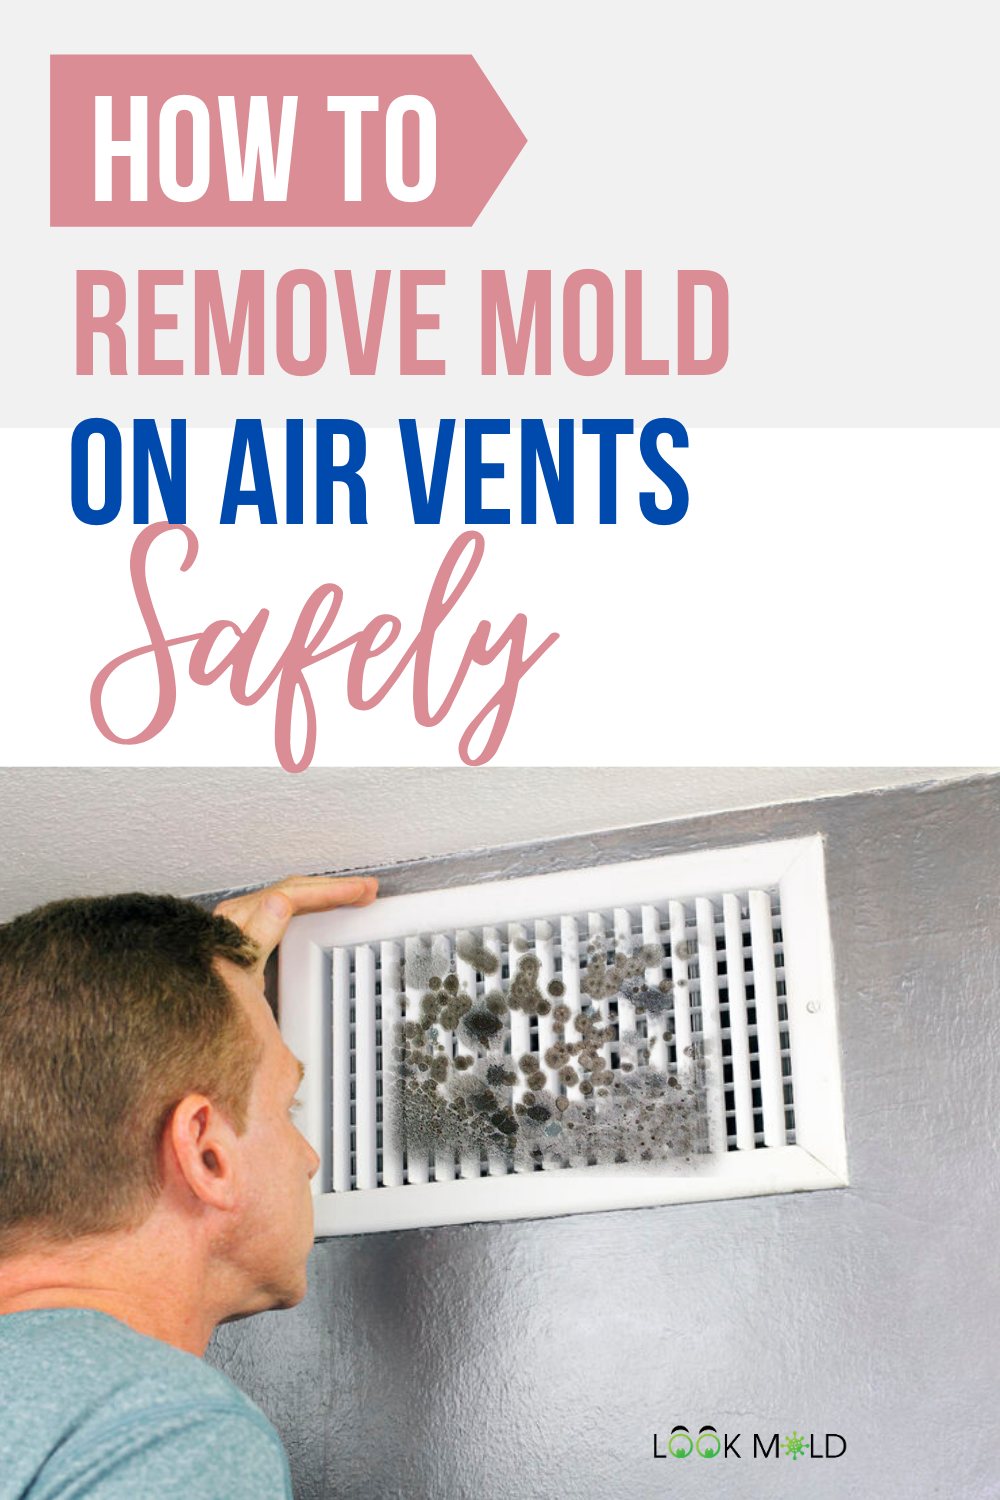 Pin on The Best of Look Mold